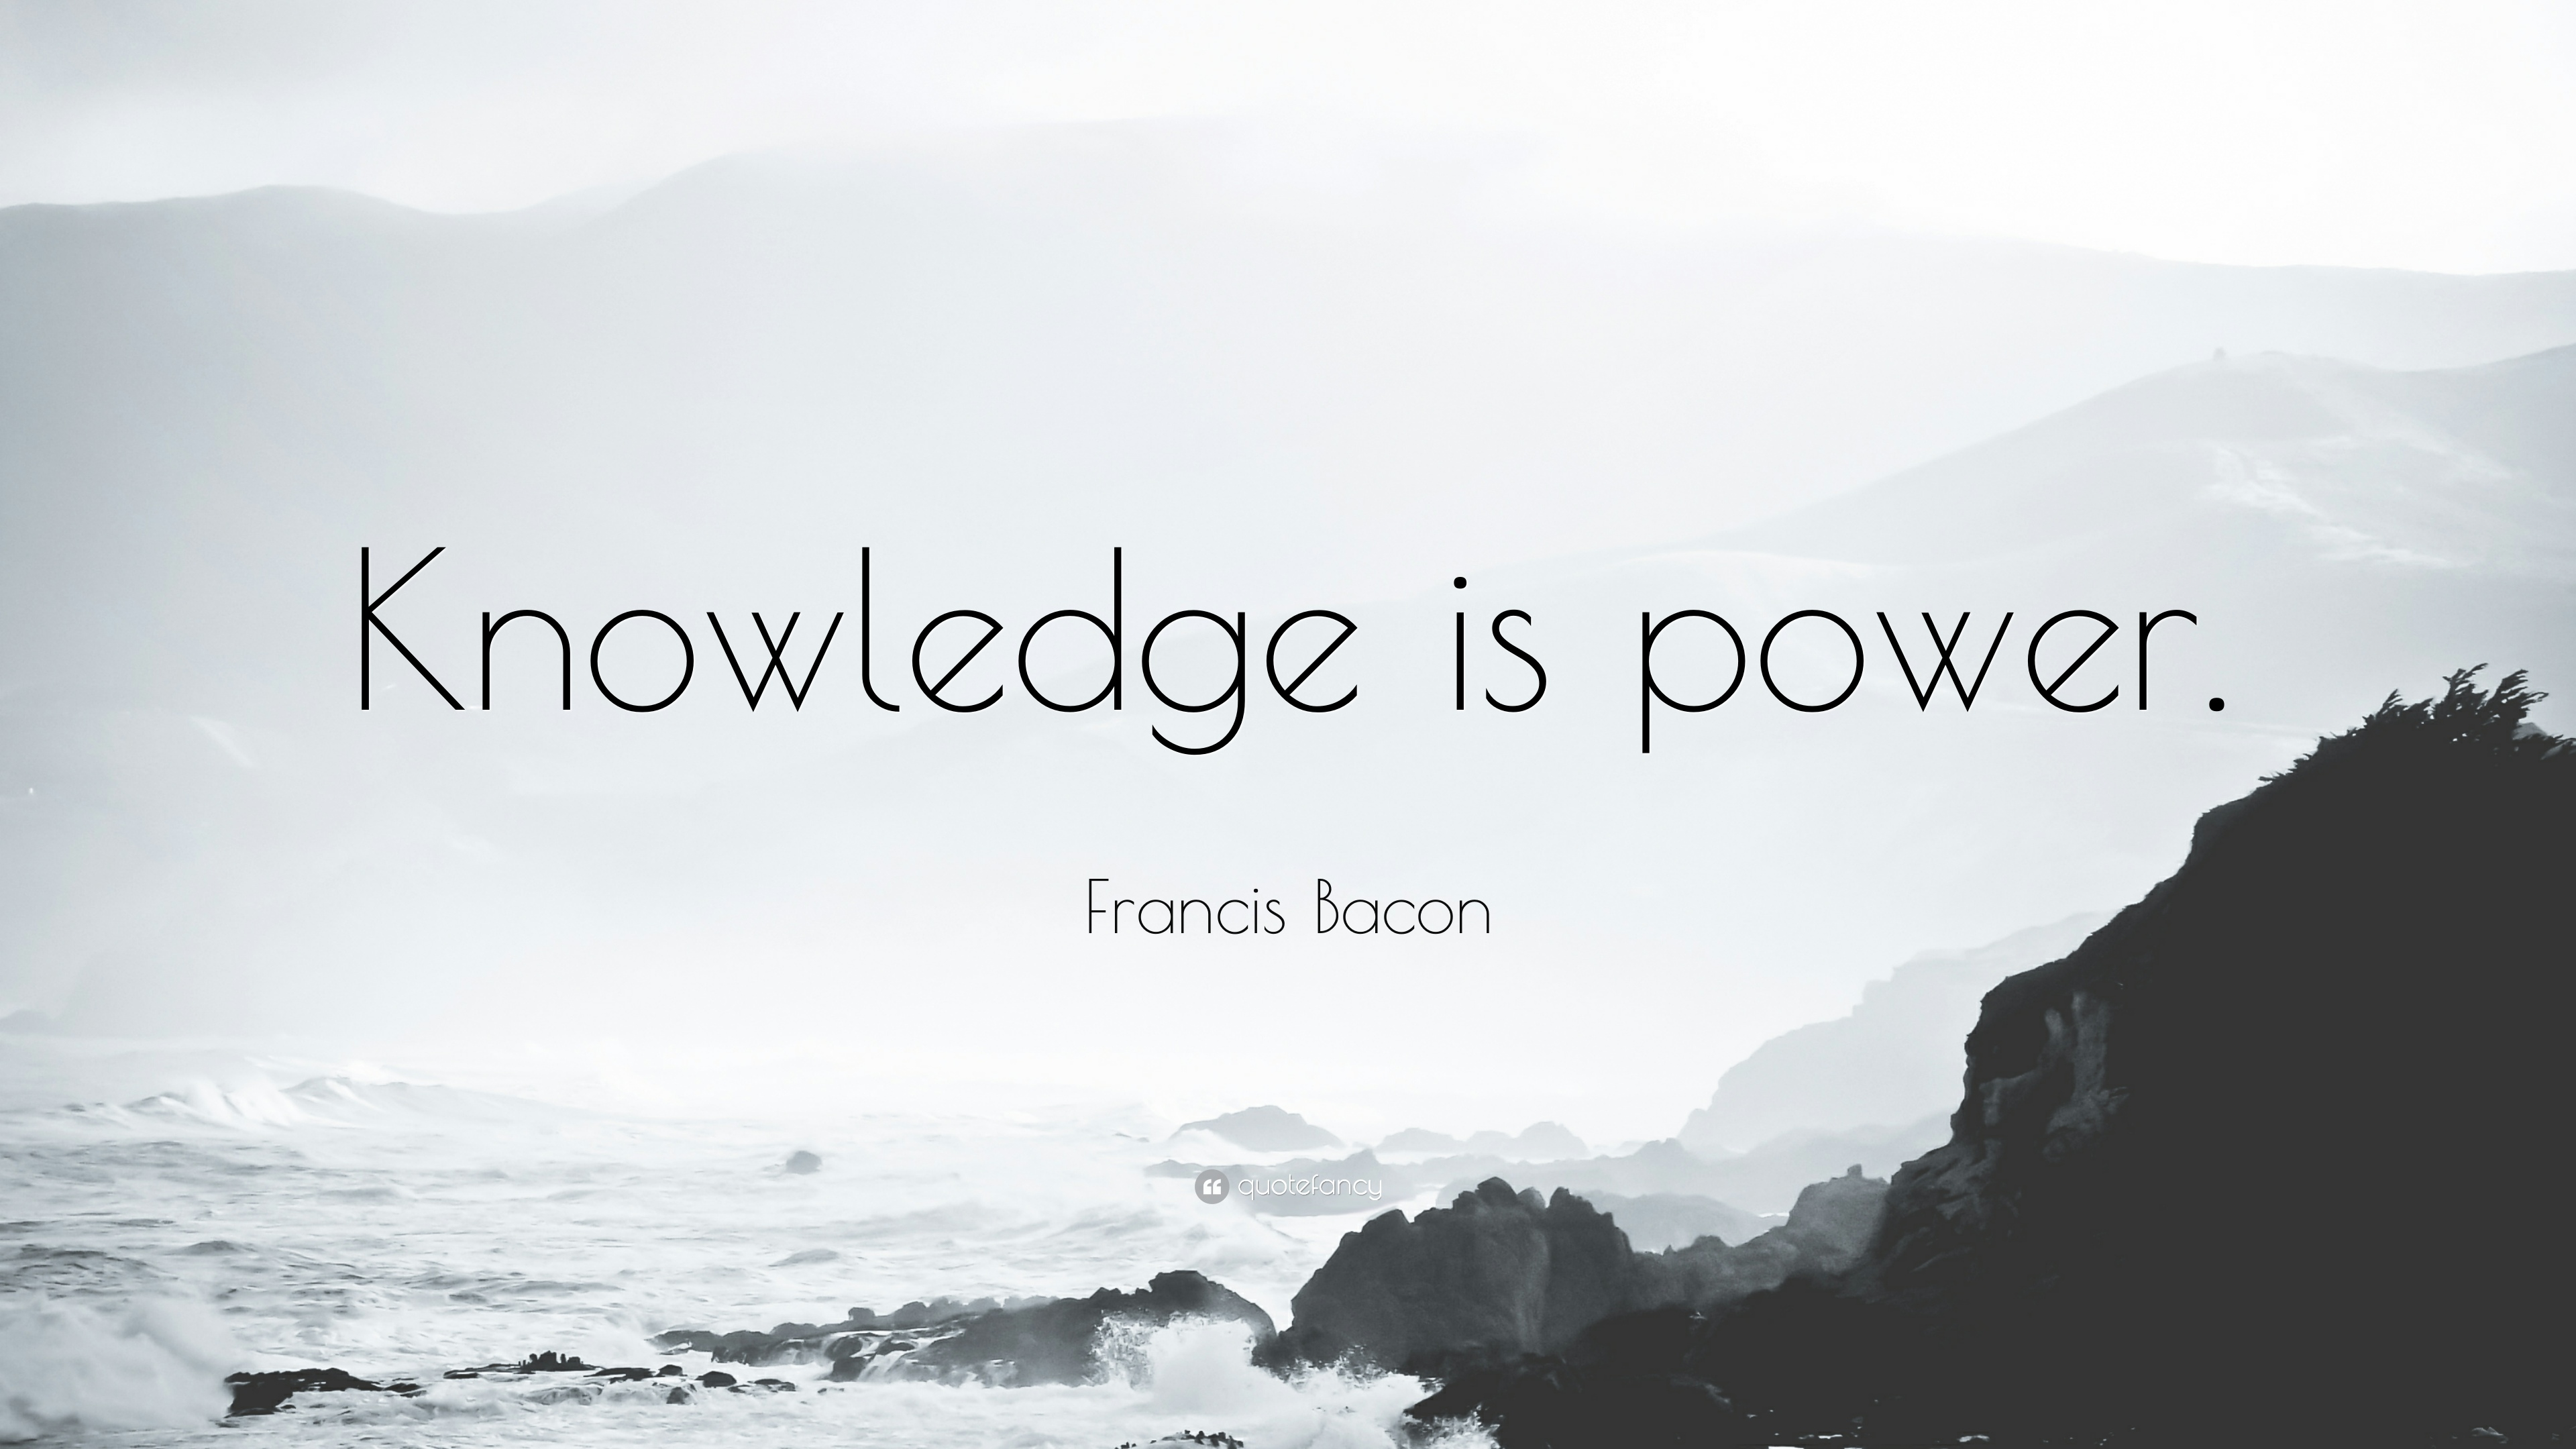 francis bacon quote knowledge